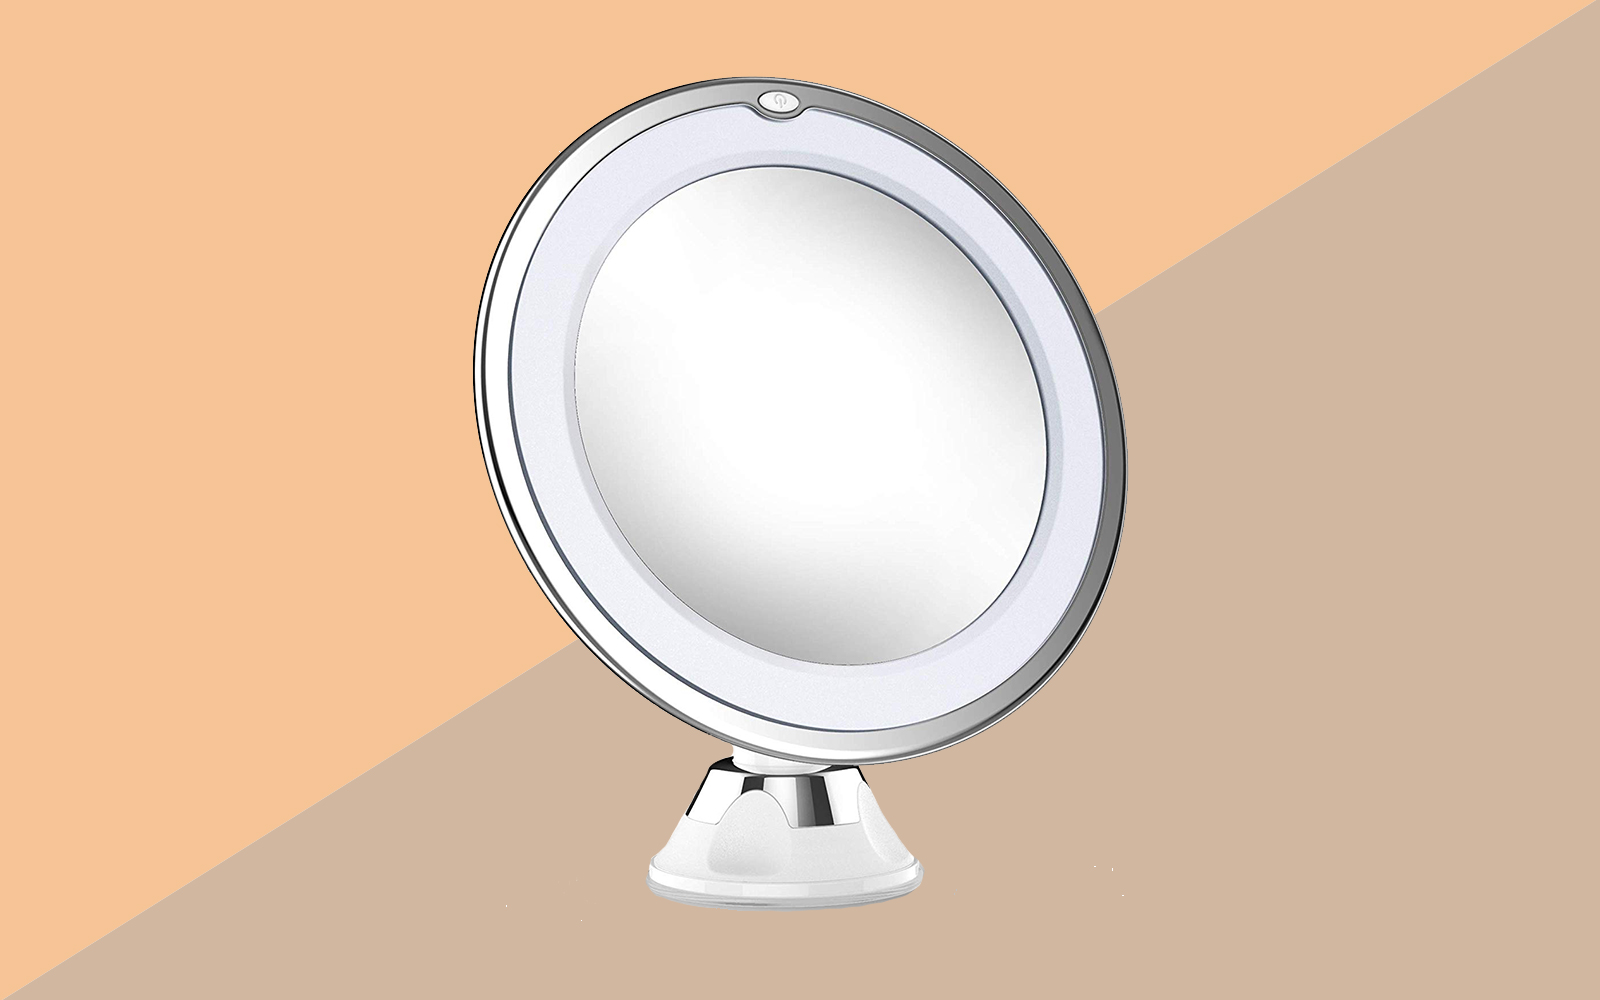 This Best Selling Portable Led Magnifying Mirror Solves The Problem Of Putting On Makeup In Dimly Lit Hotel Bathrooms Travel Leisure